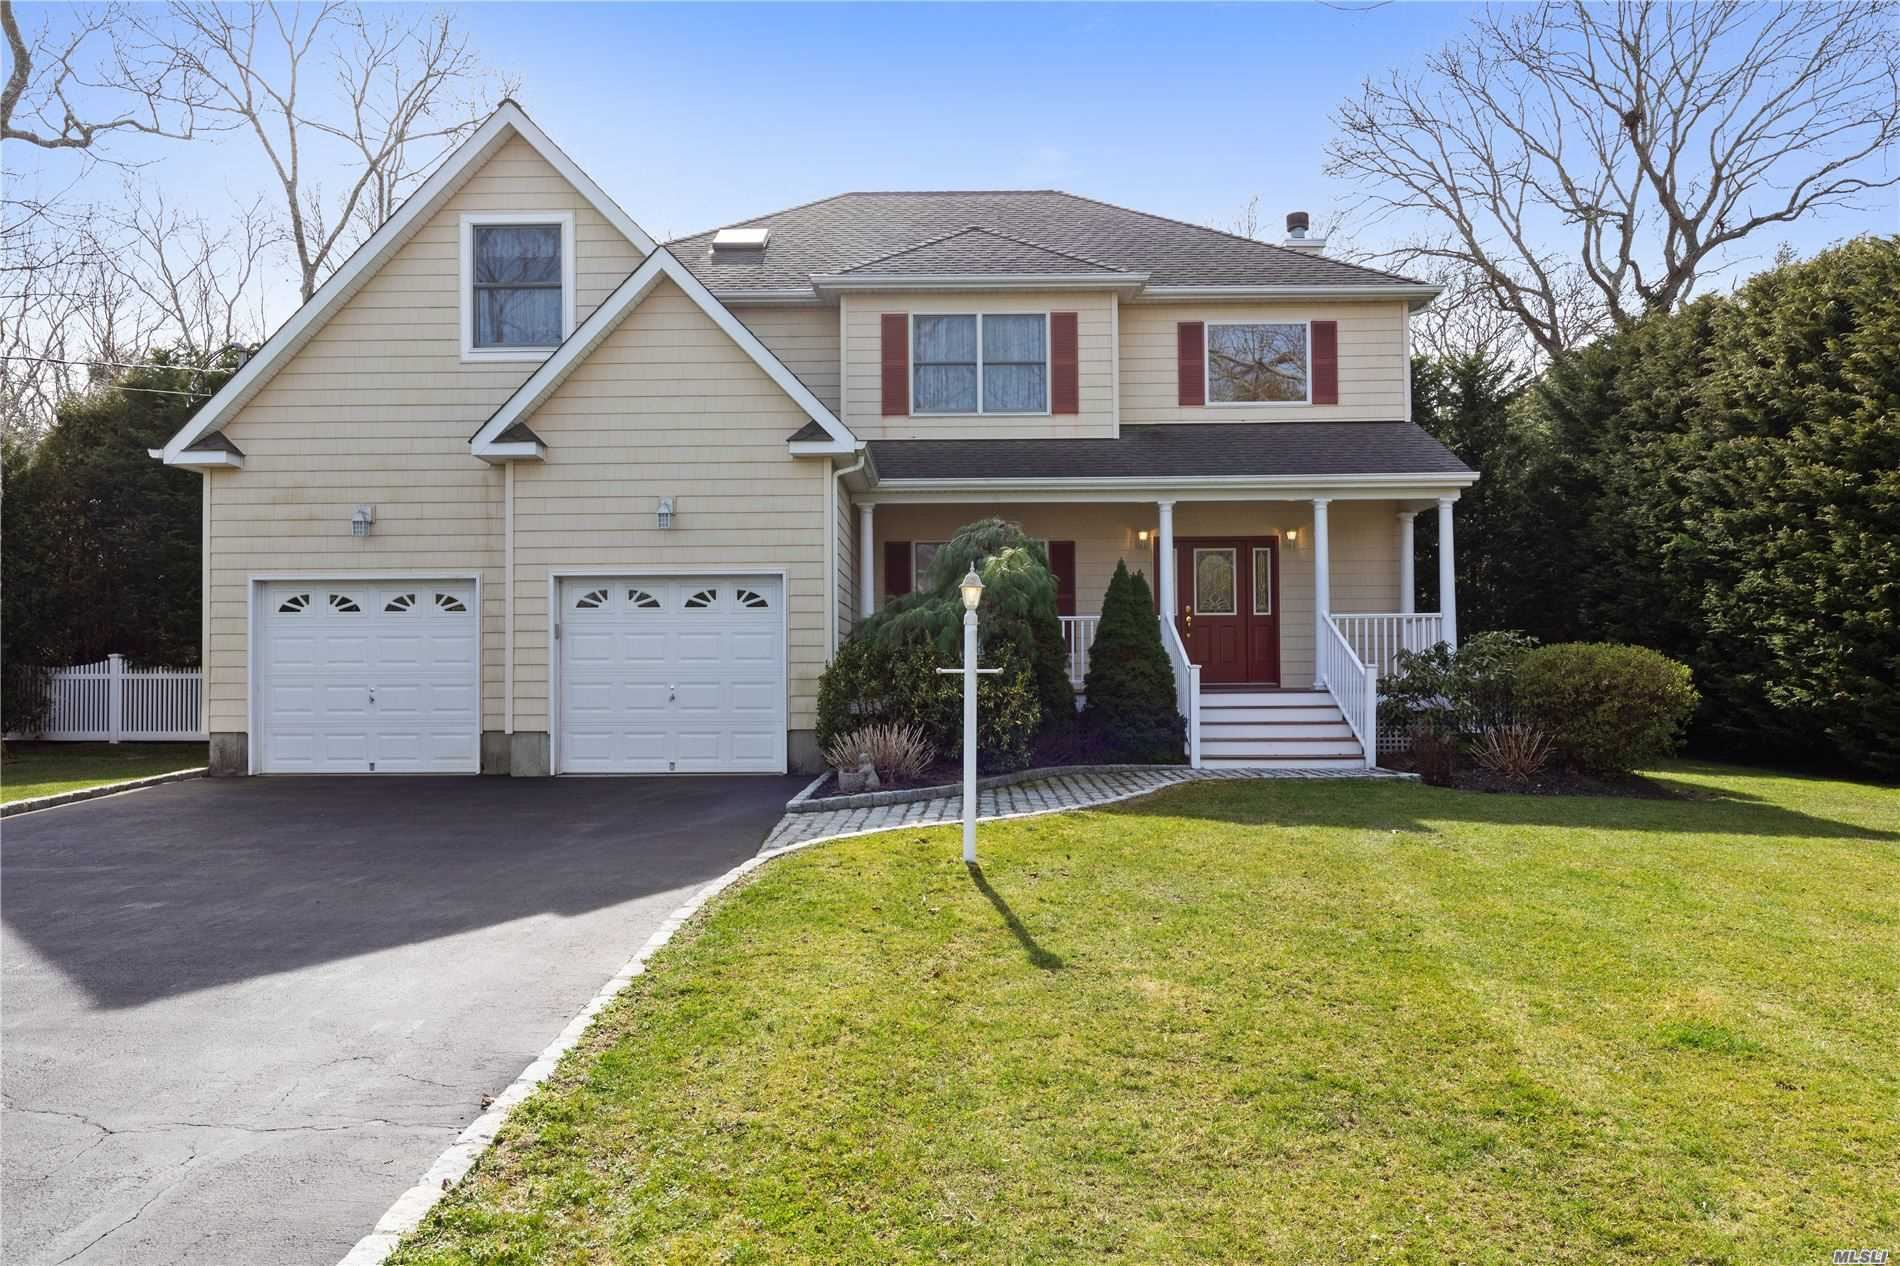 12 Fairline Drive, East Quogue, NY 11942 - MLS#: 3209977